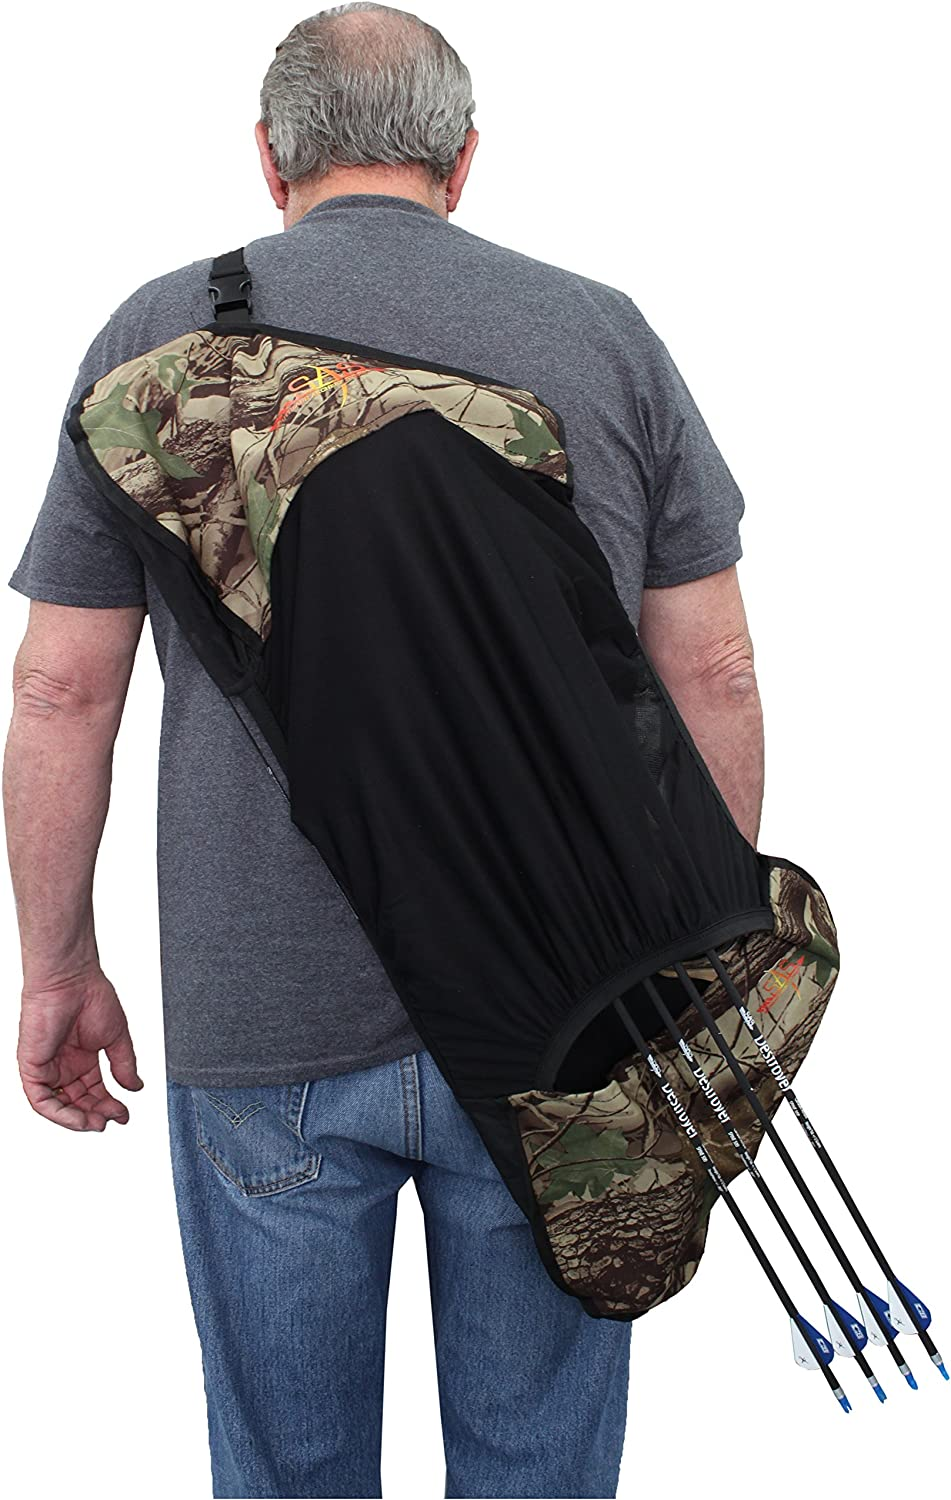 Southland Archery Supply SAS Compound Bow Cover Sleeve Sling